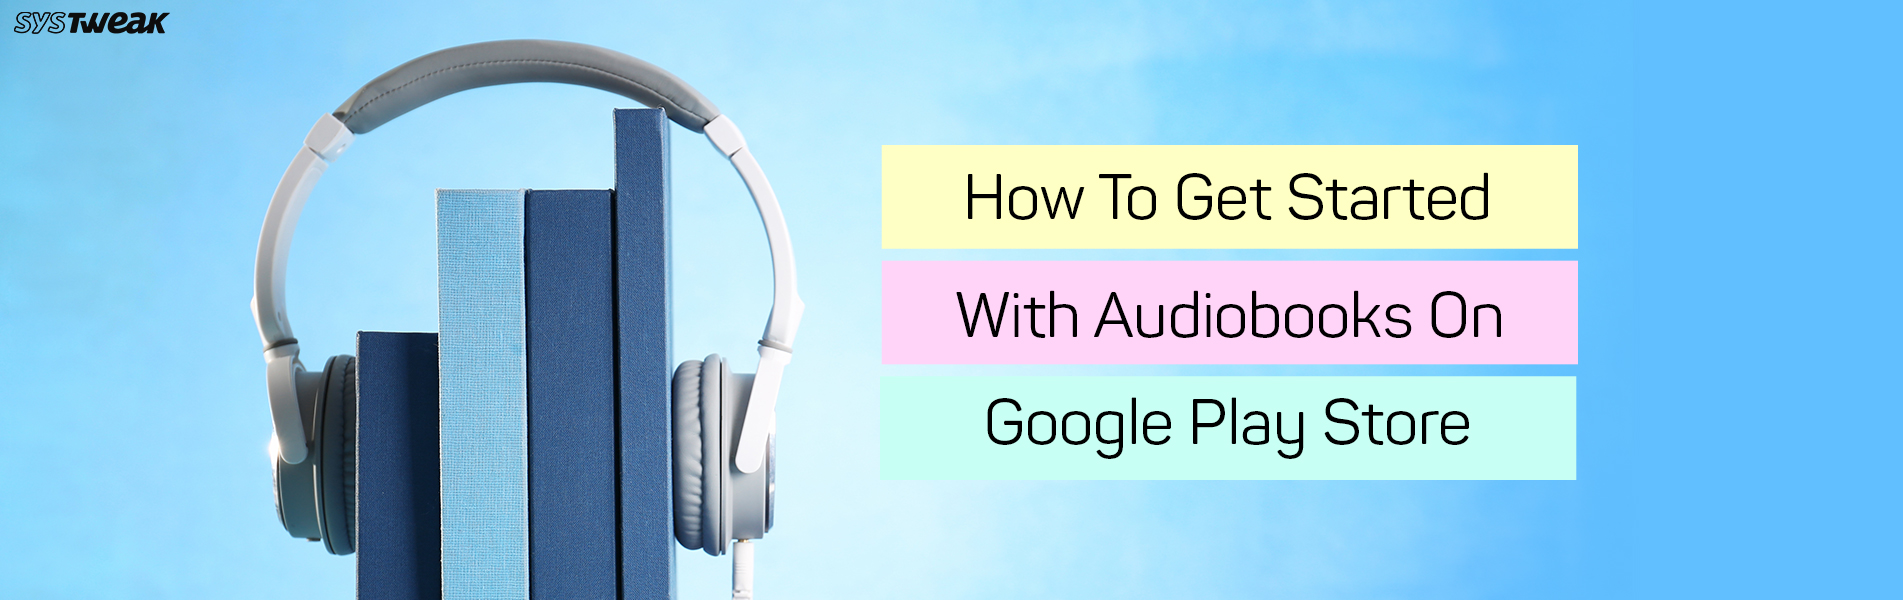 How To Get Started With Audiobooks On Google Play Store?